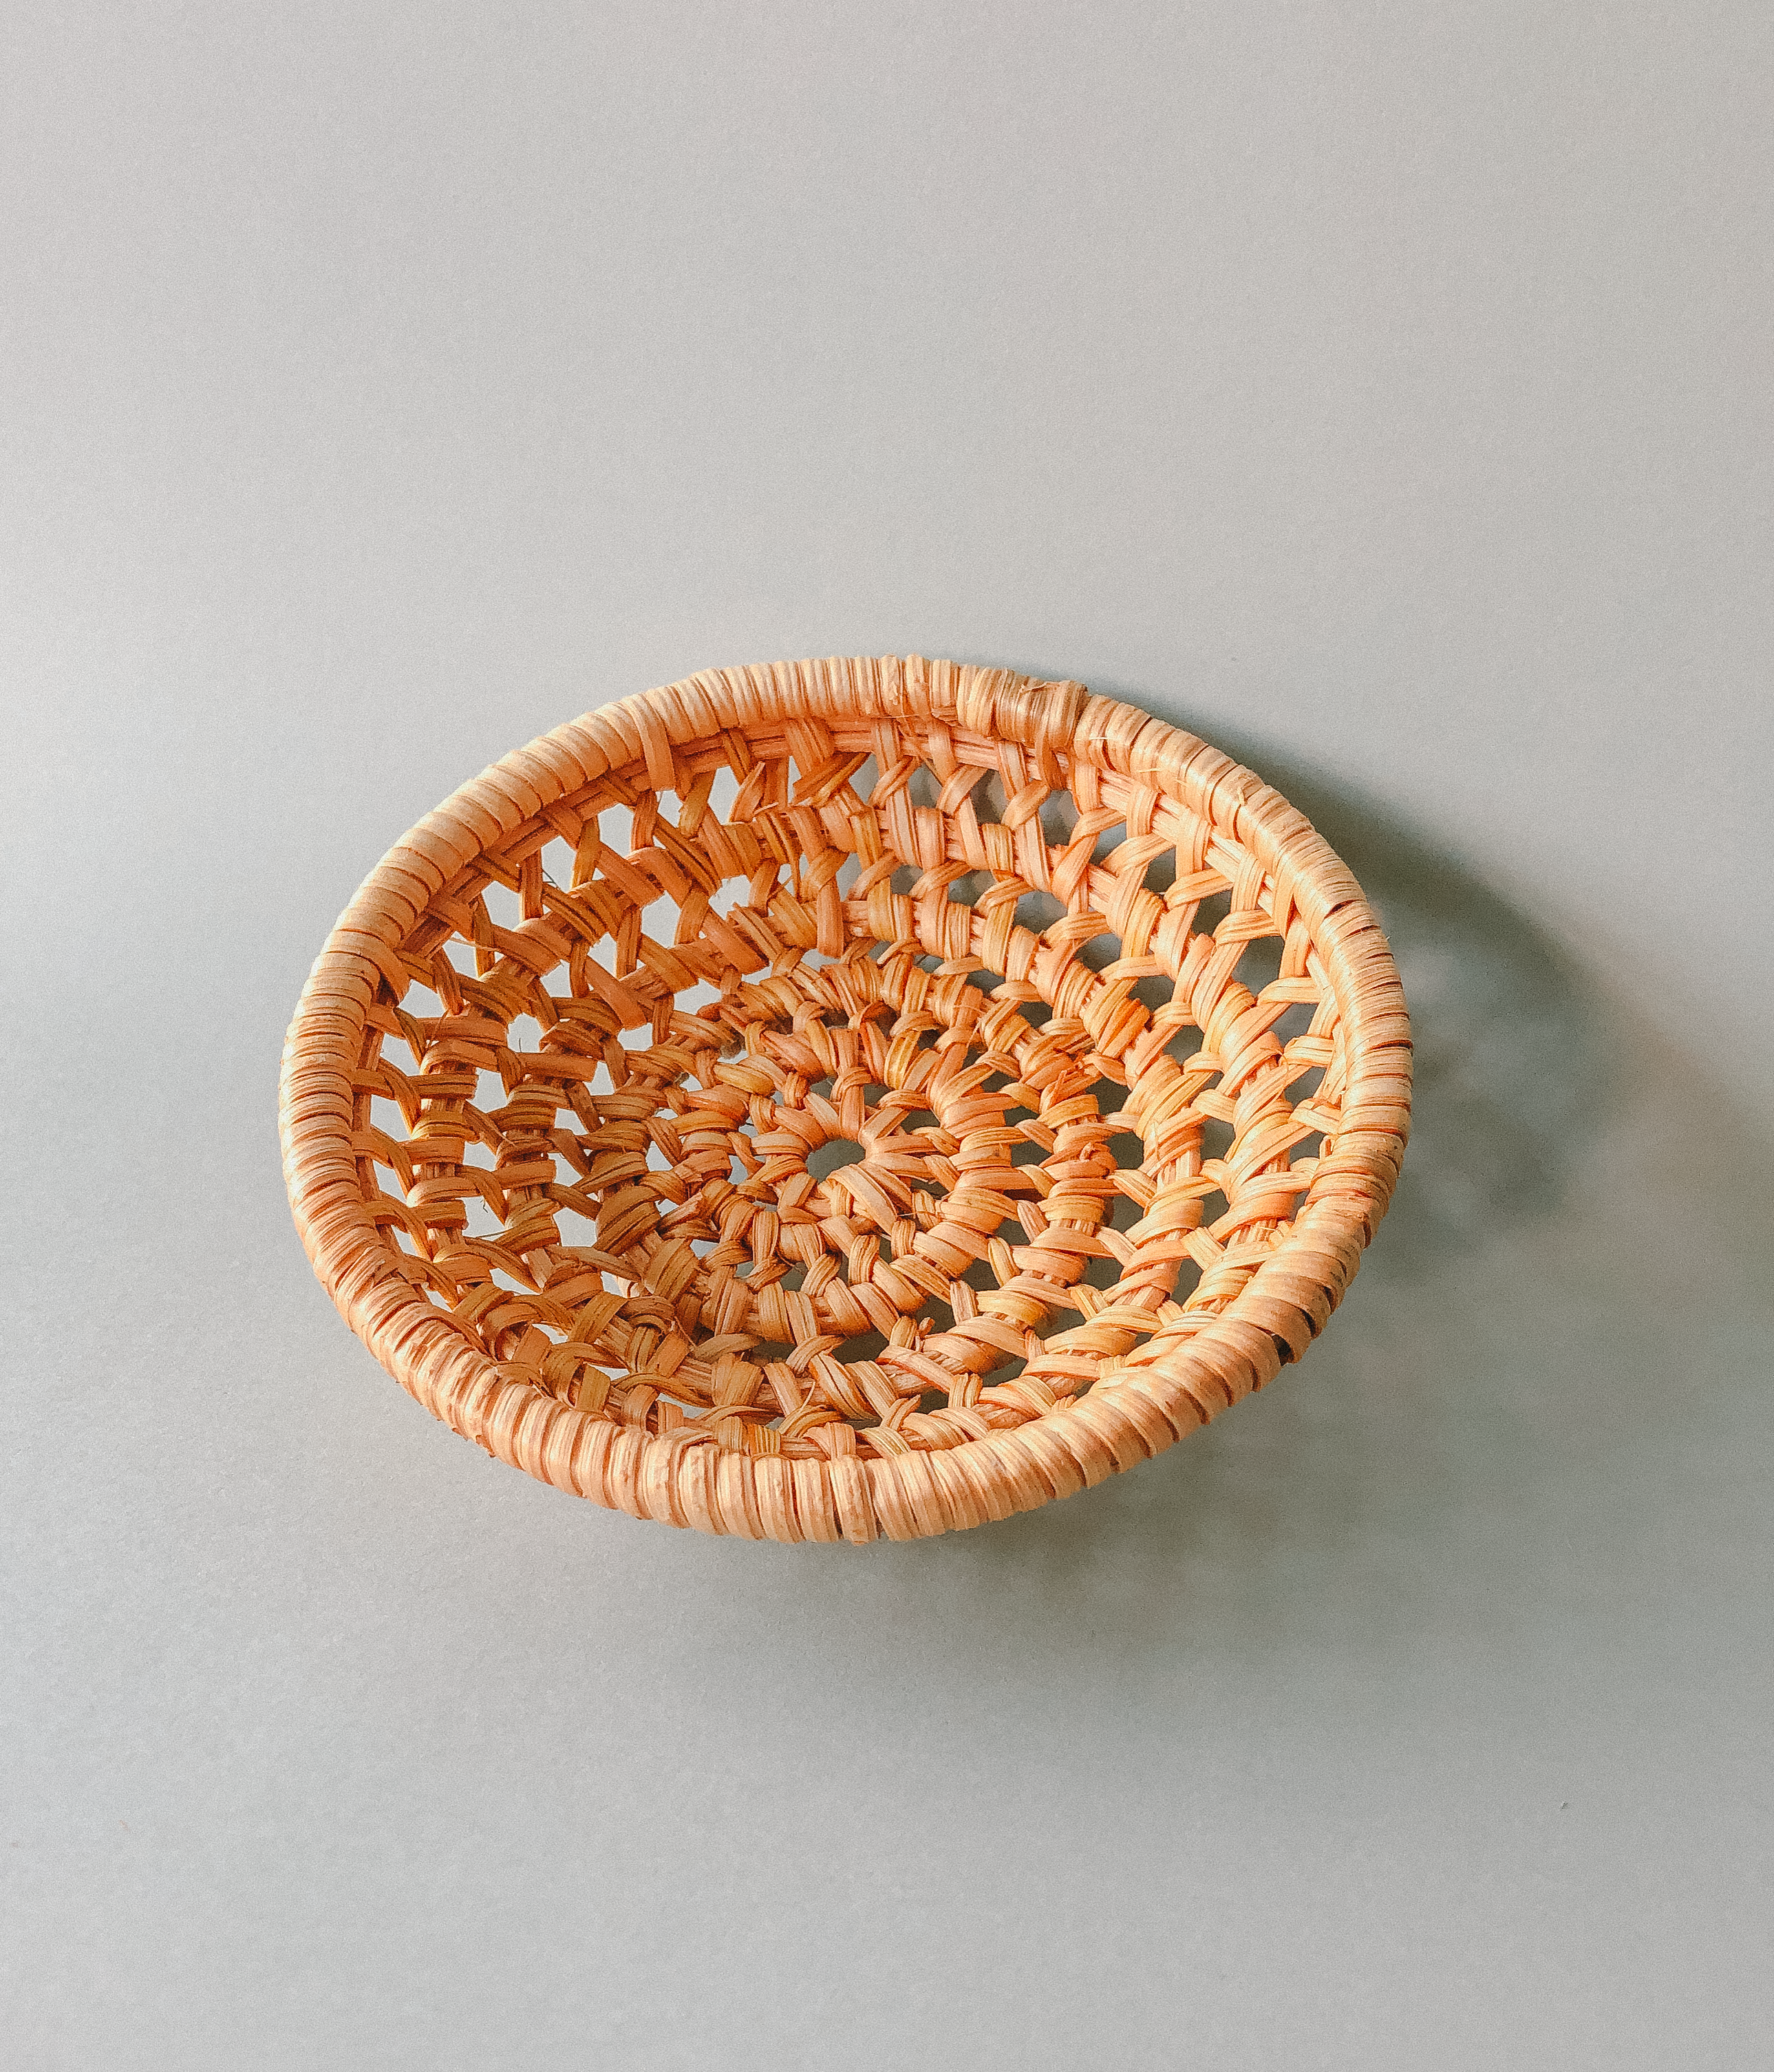 Handwoven Rattan Basket Coasters  by PROSE Tabletop